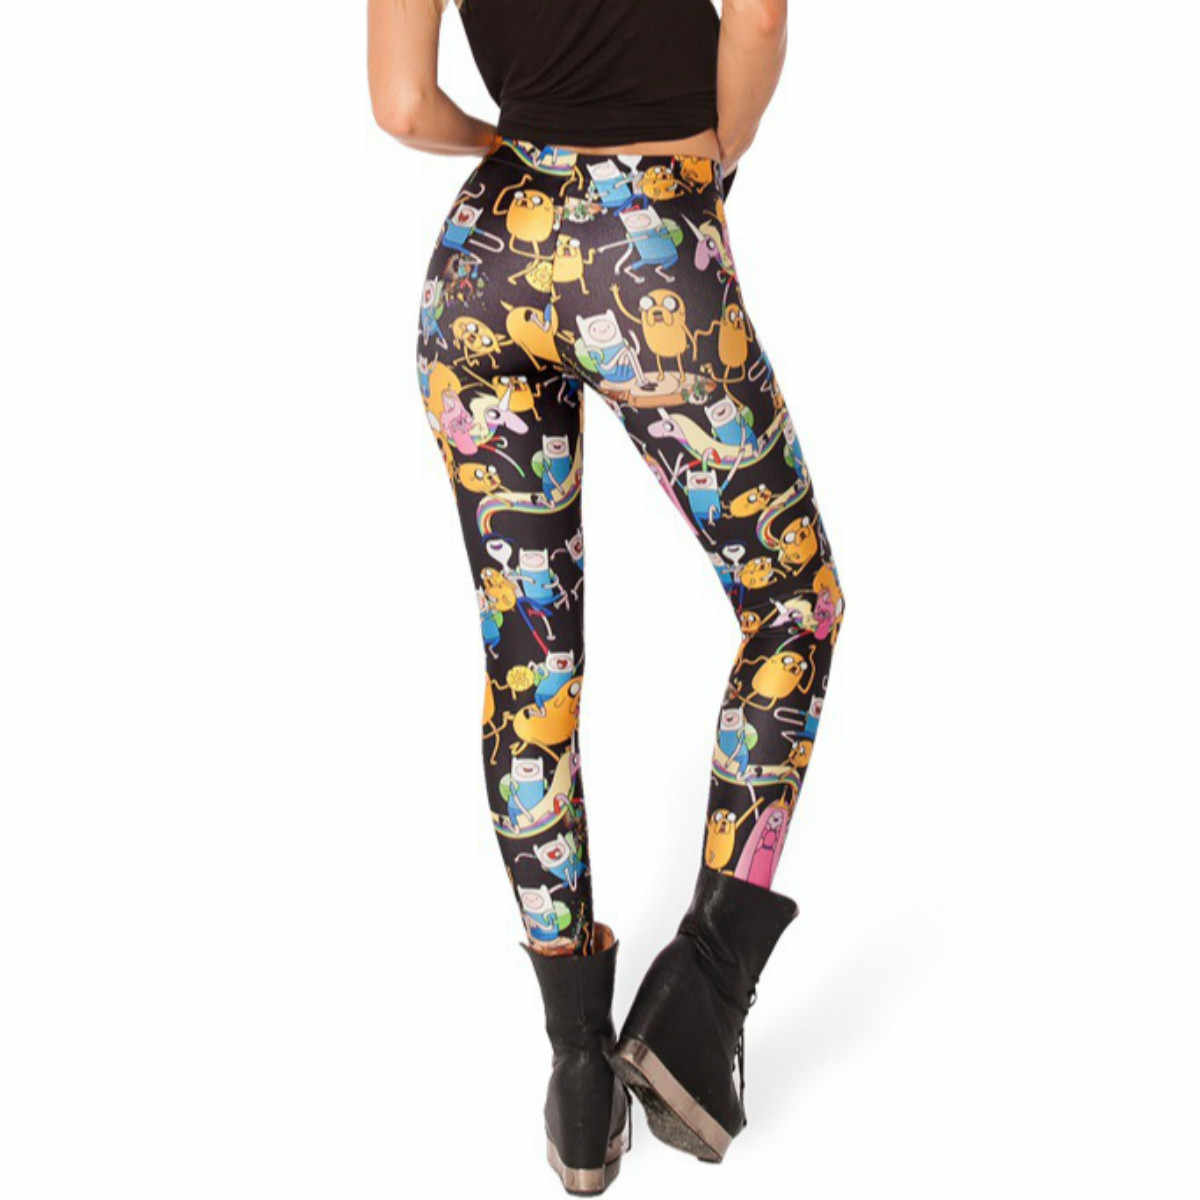 e6d1d47d405ce ... Legging Sexy 3D Longs Graphic Colourful Printed Slacks Women's Stretchy  Skinny Leggings Lady Tattoo Pants New ...